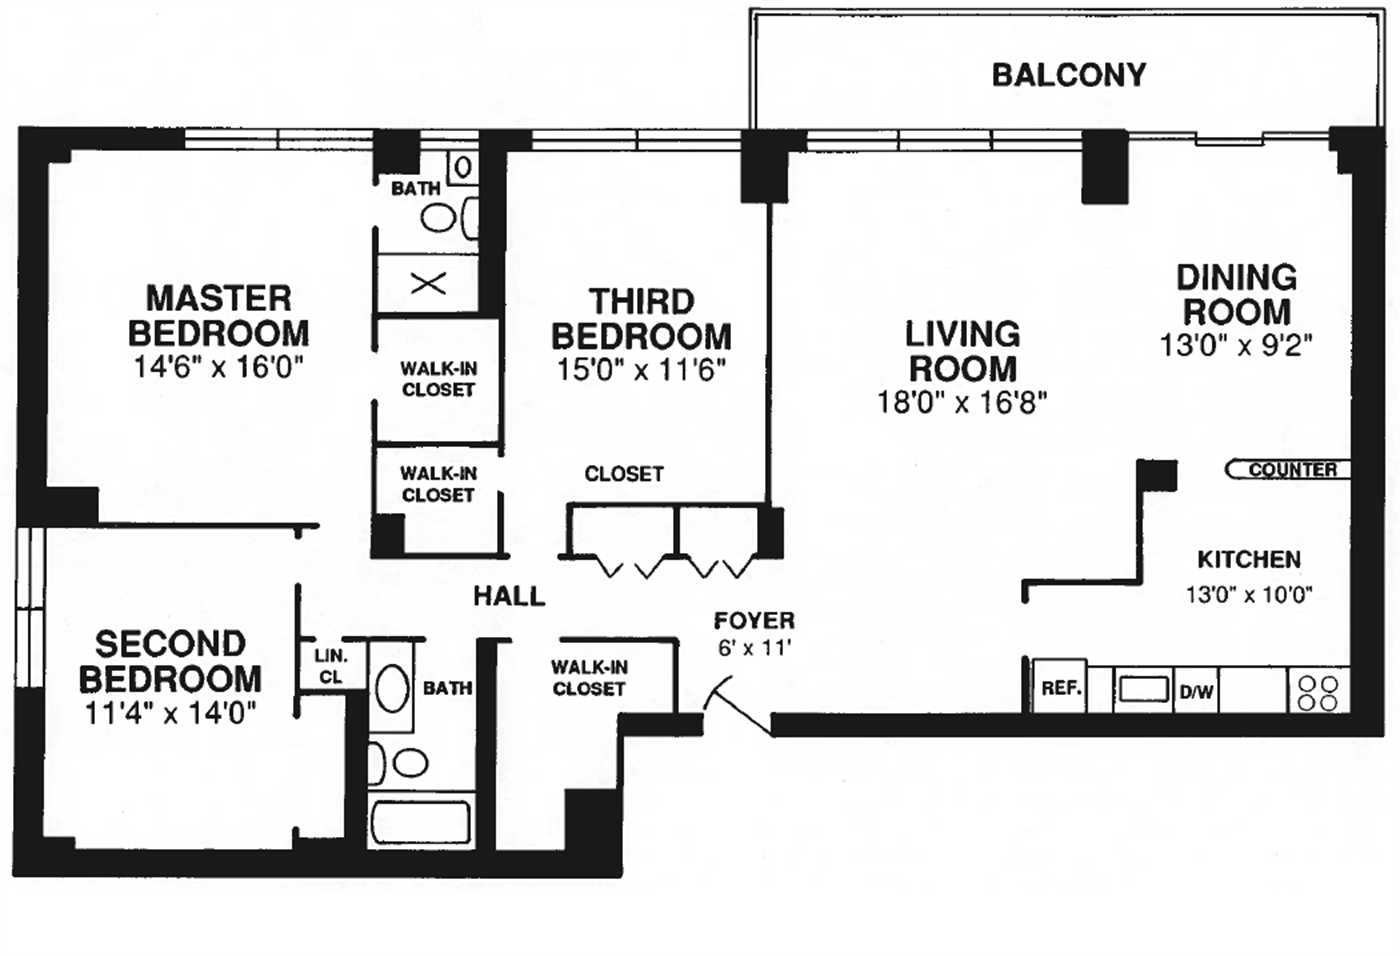 20 unique free floor plan templates house plans 6351 House design templates